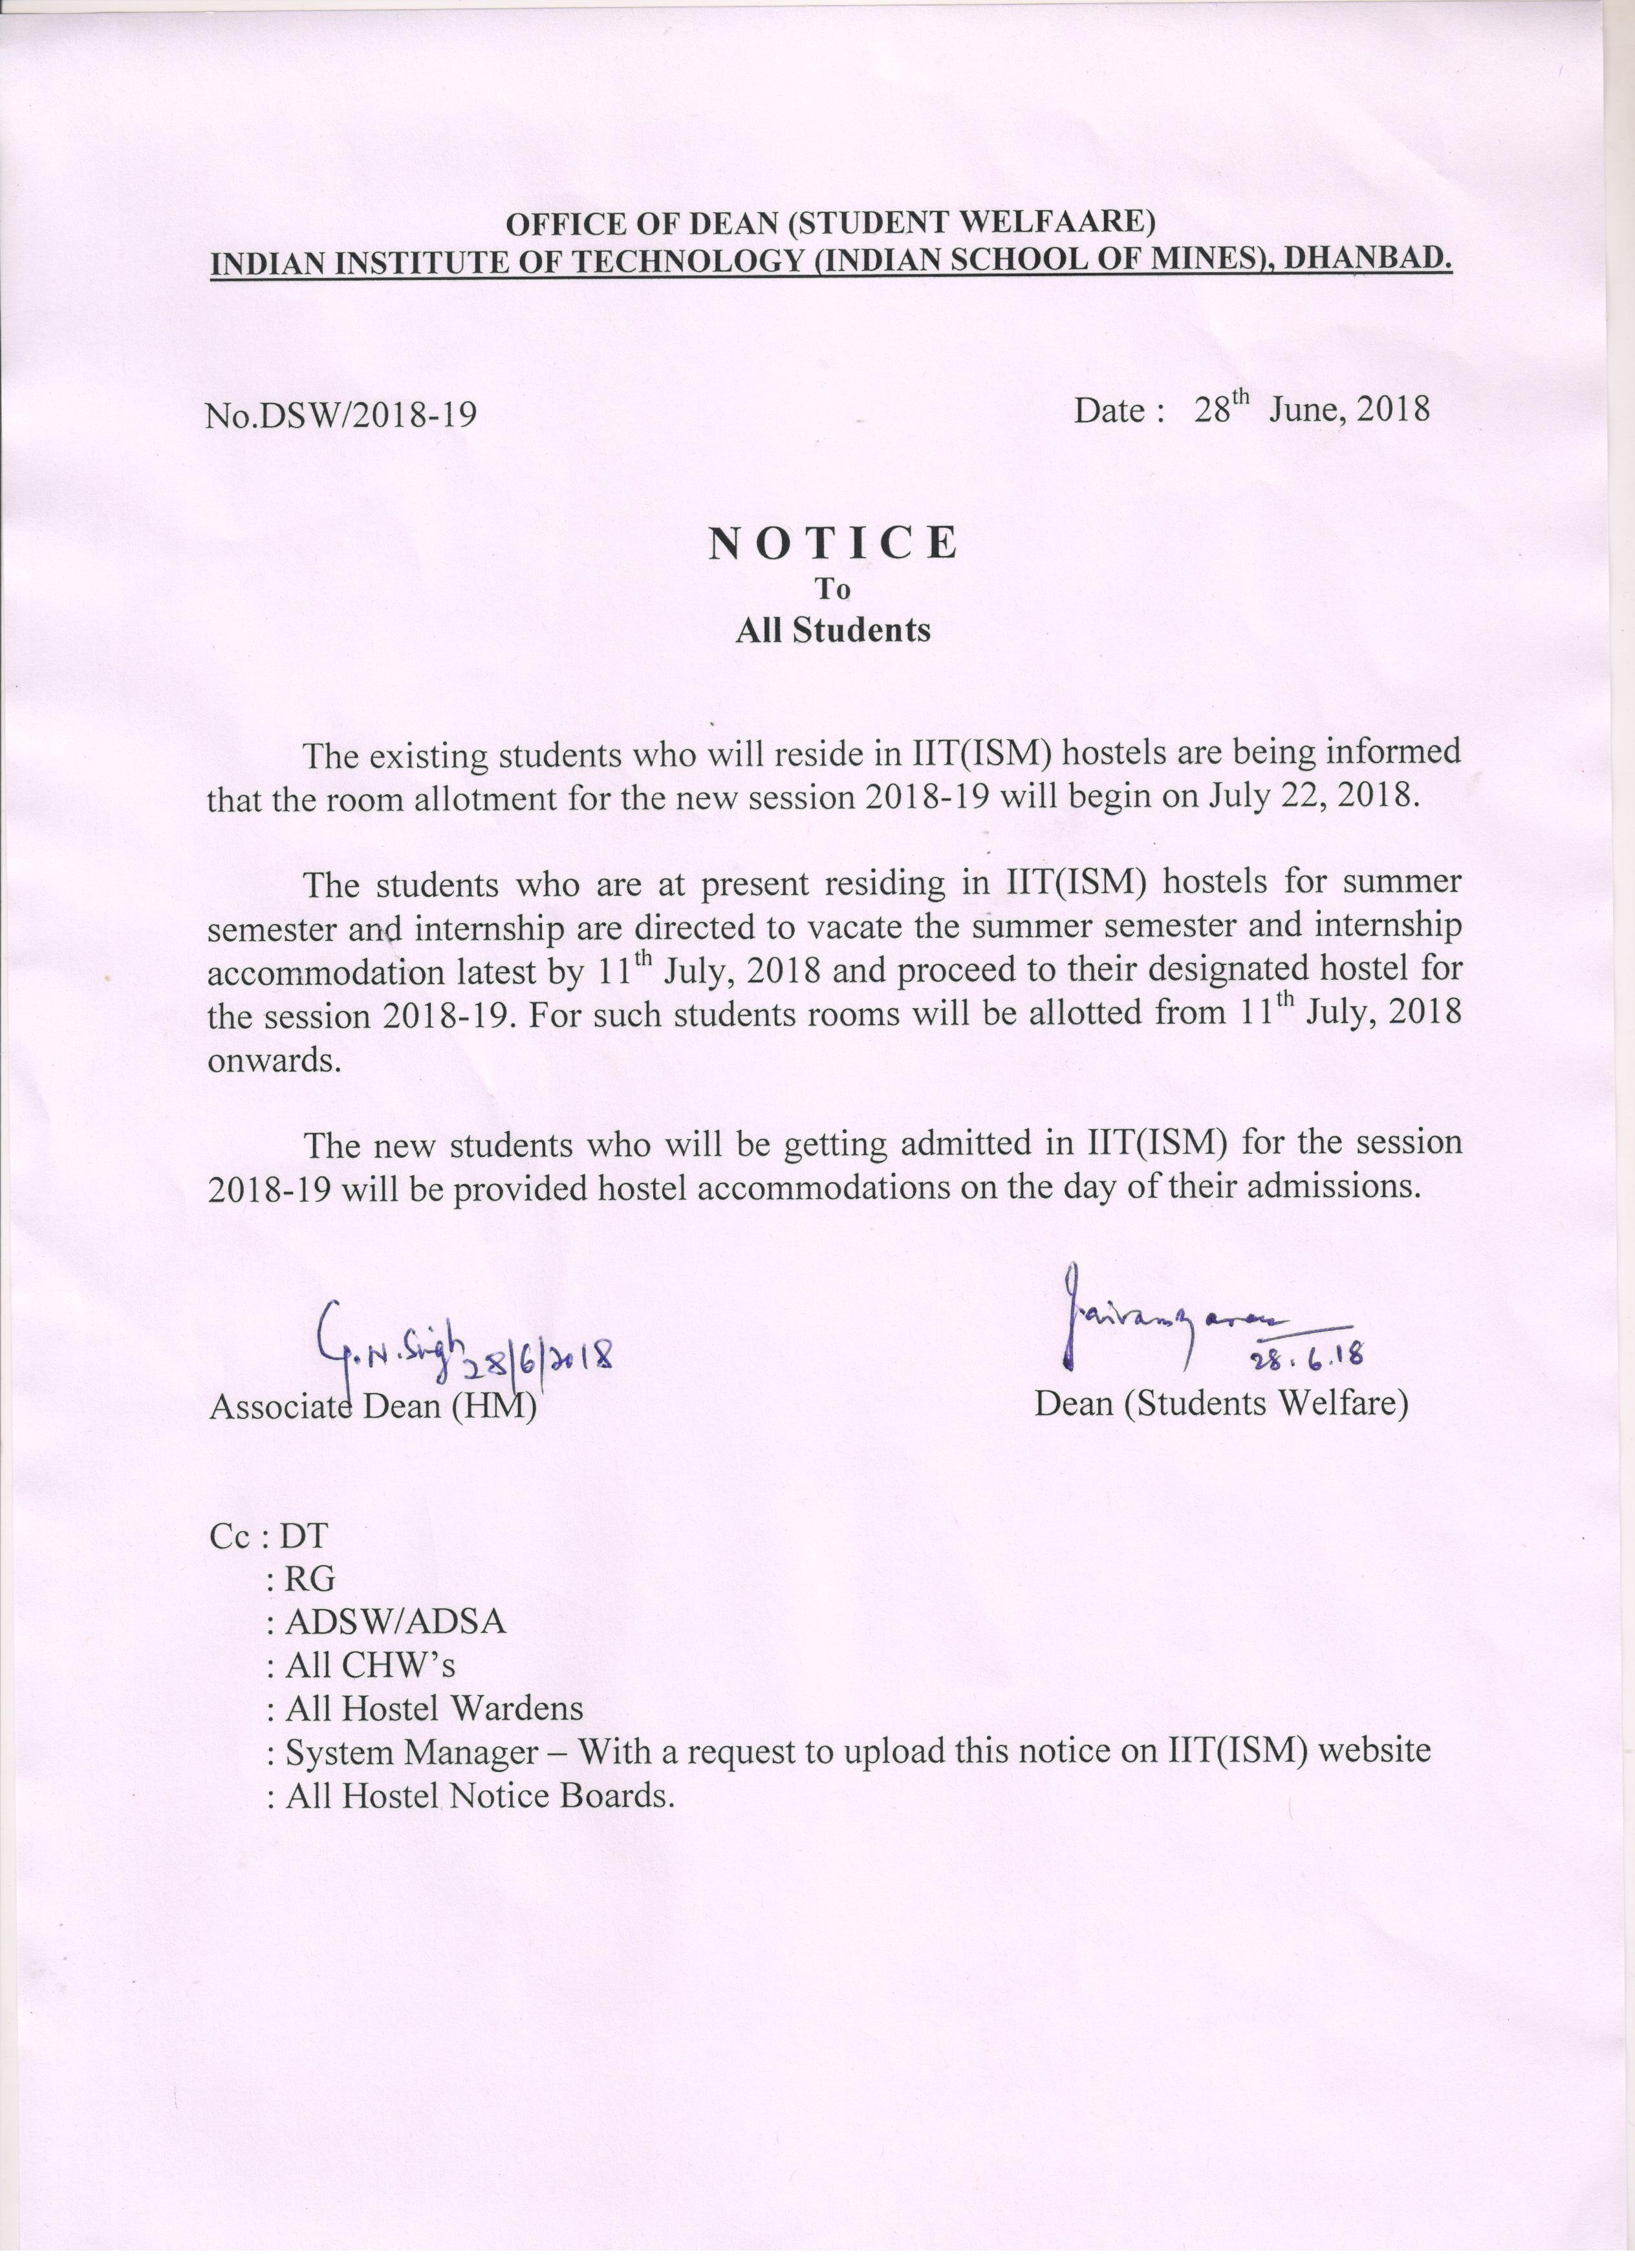 Iit ism dhanbad indian institute of technology indian school 162 notice to all students click here altavistaventures Gallery